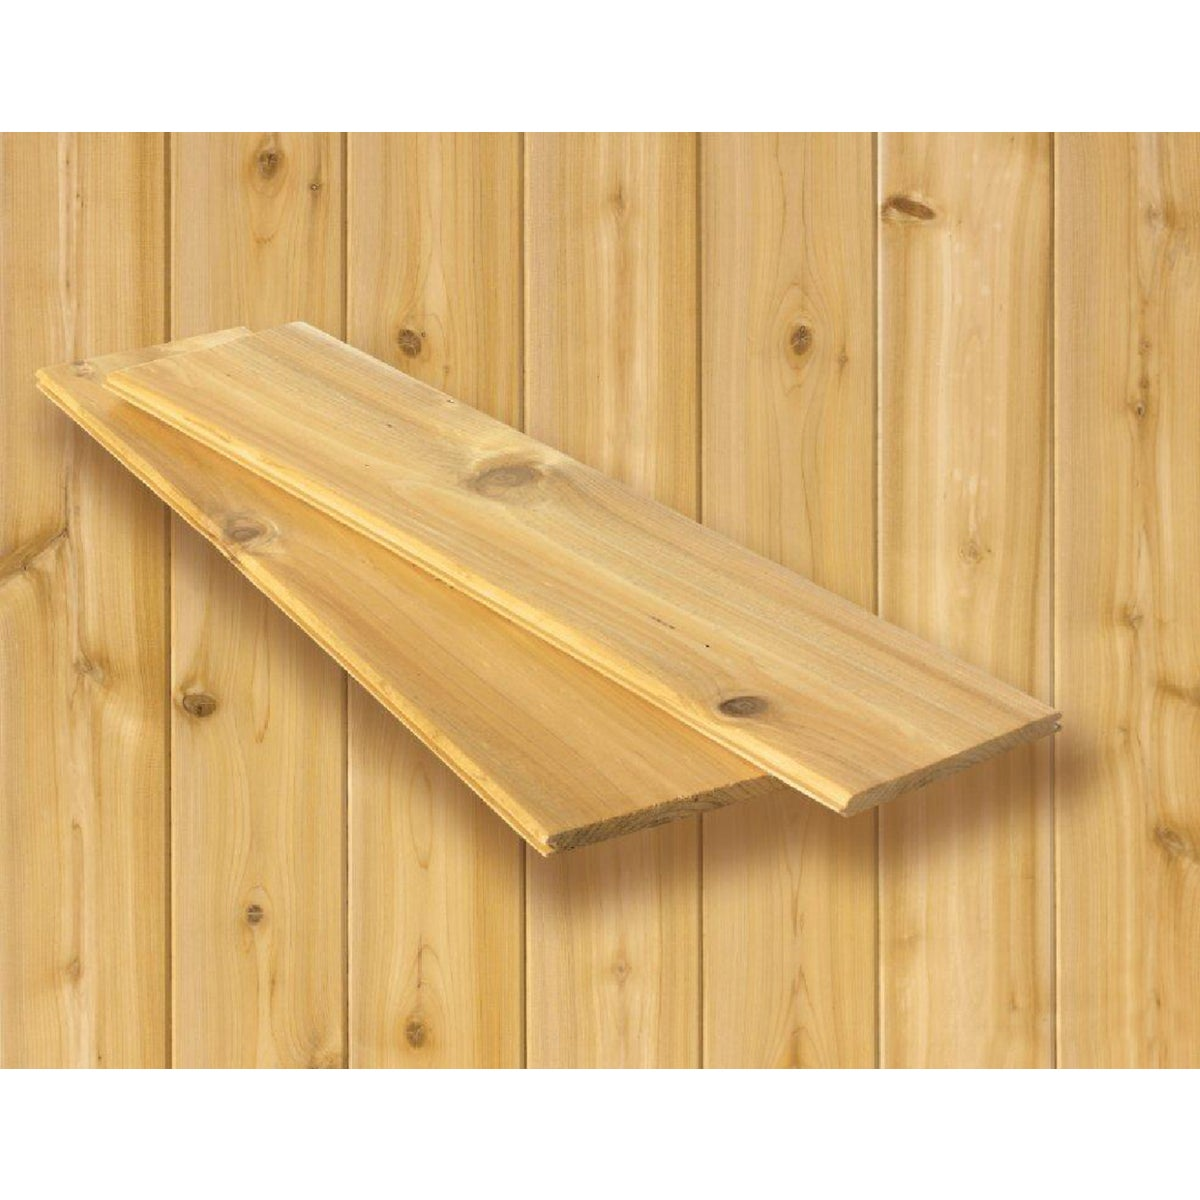 V-EDGE CEDAR PANELING - 7170 by Dpi Decorative Panel